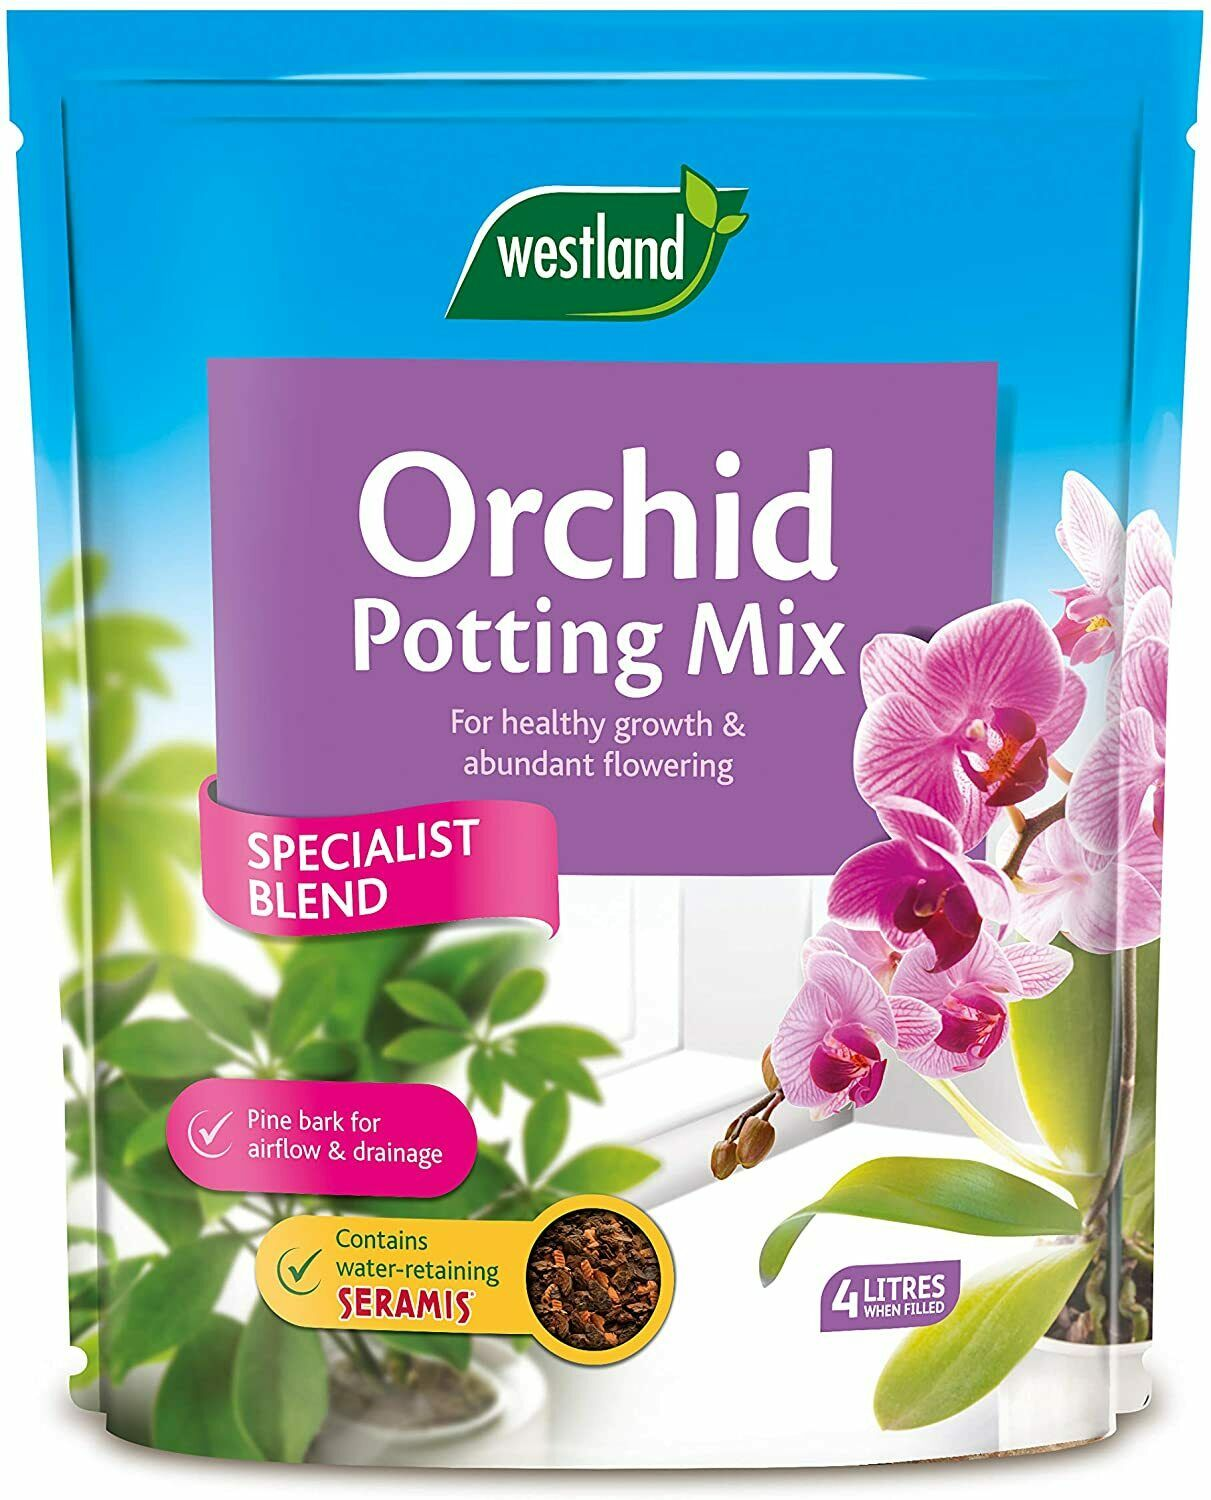 Westland Orchid Potting Compost Mix and Enriched with Seramis, 4 L, Brown